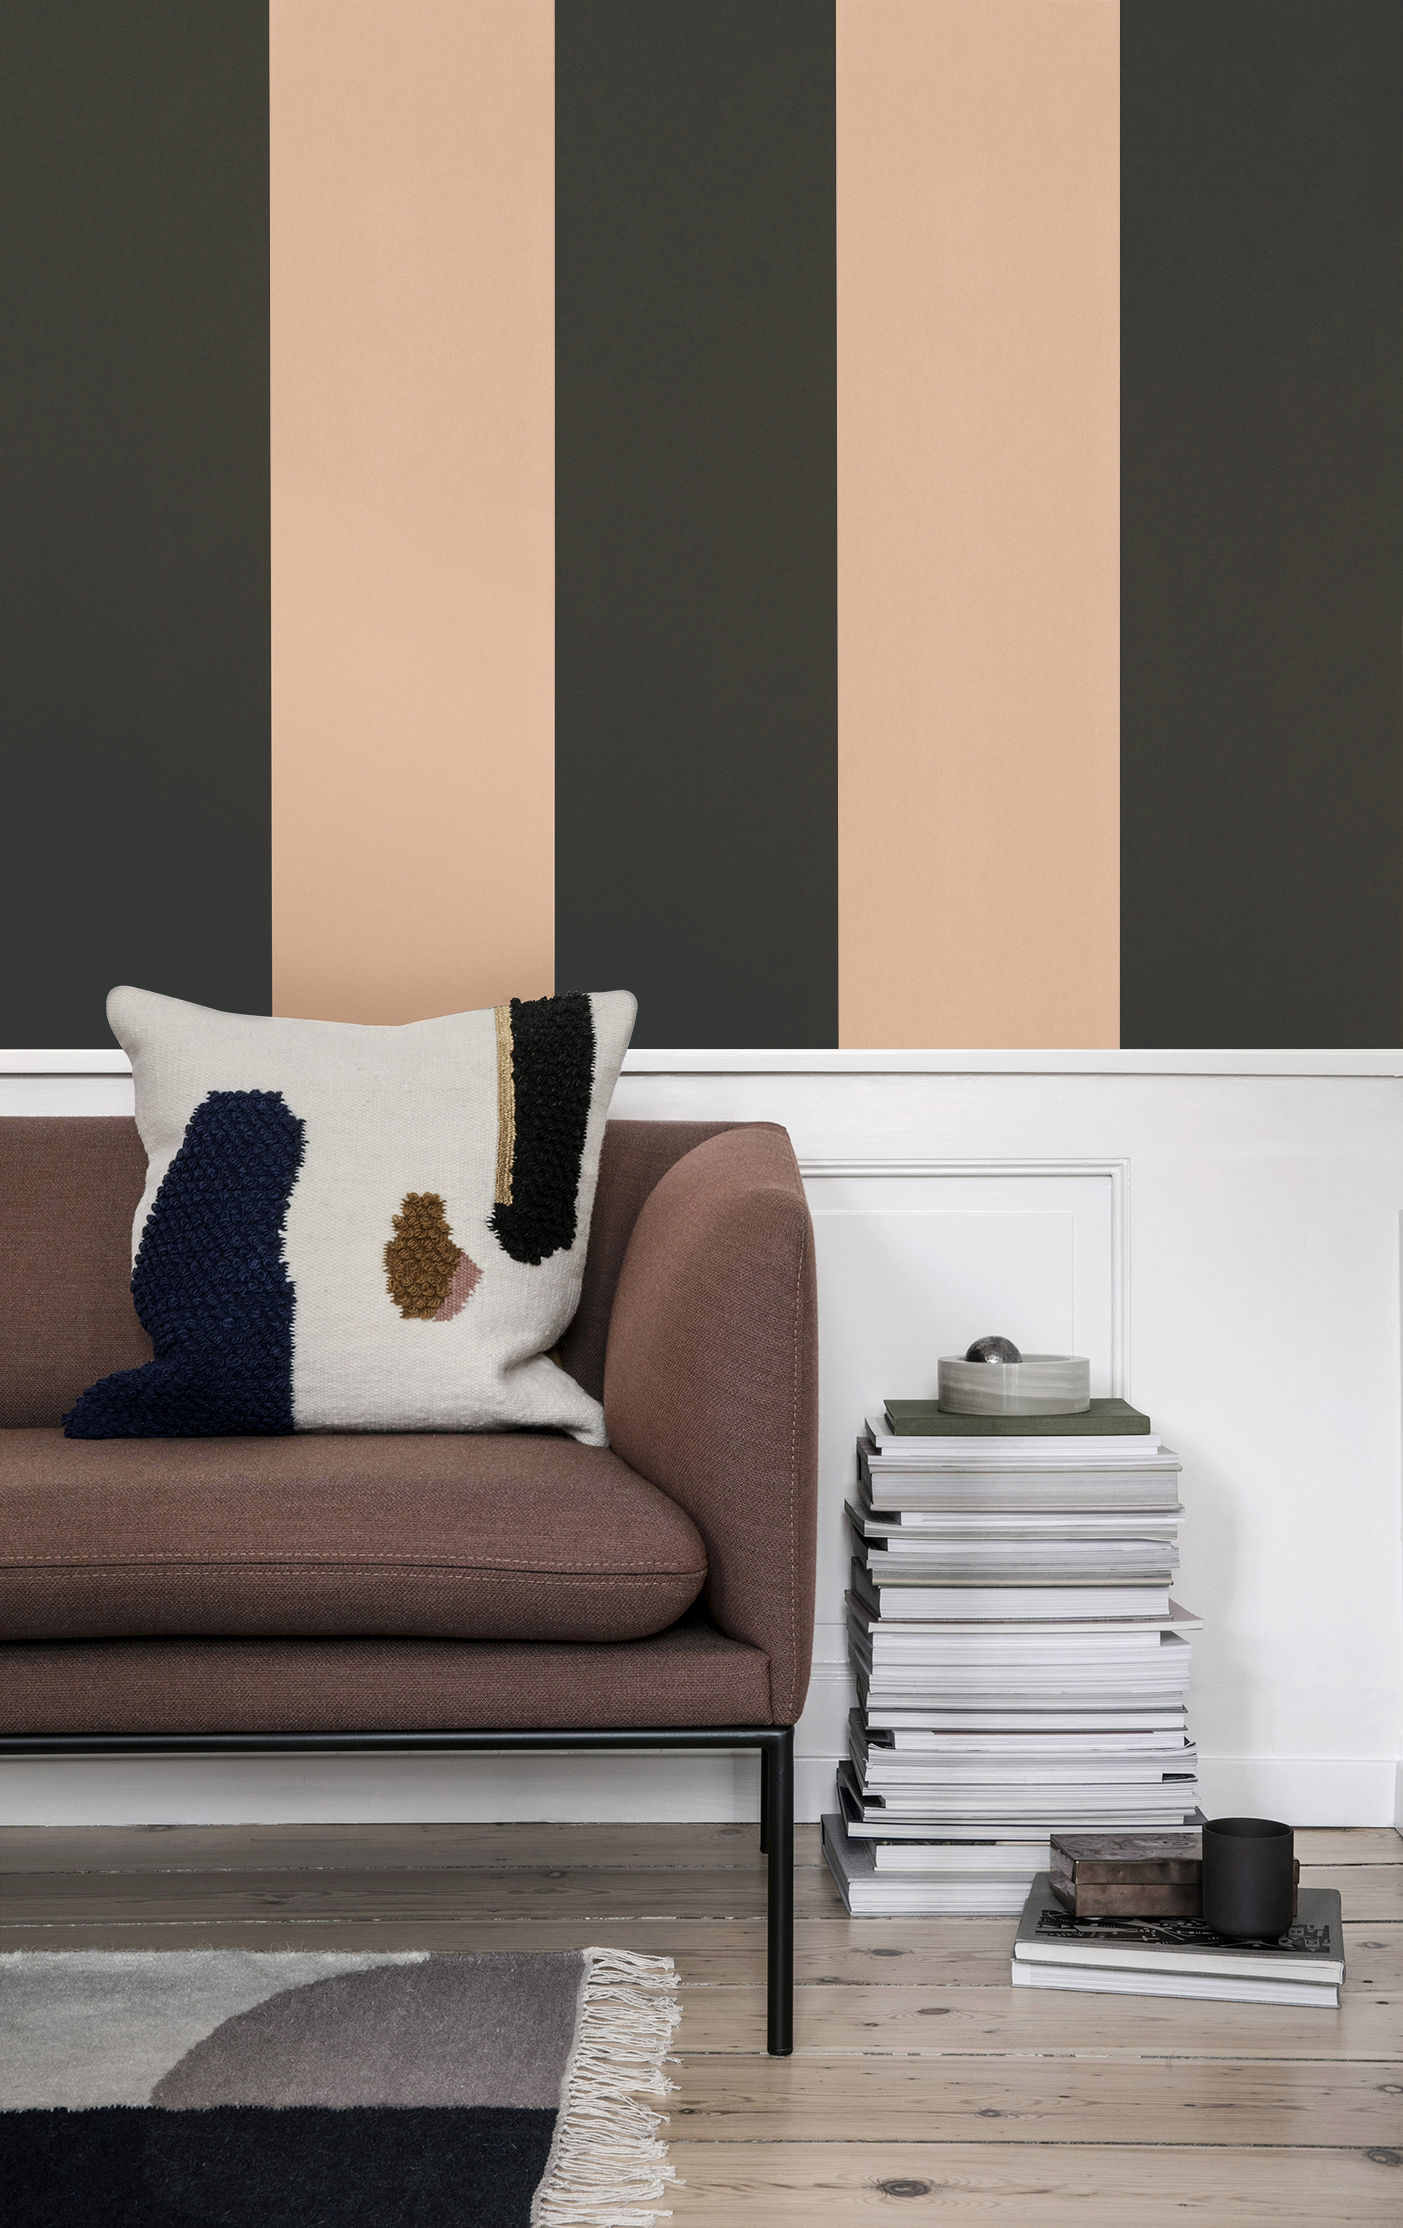 thick lines tapete 1 bahn b 53 cm khaki rosa by ferm living made in design. Black Bedroom Furniture Sets. Home Design Ideas